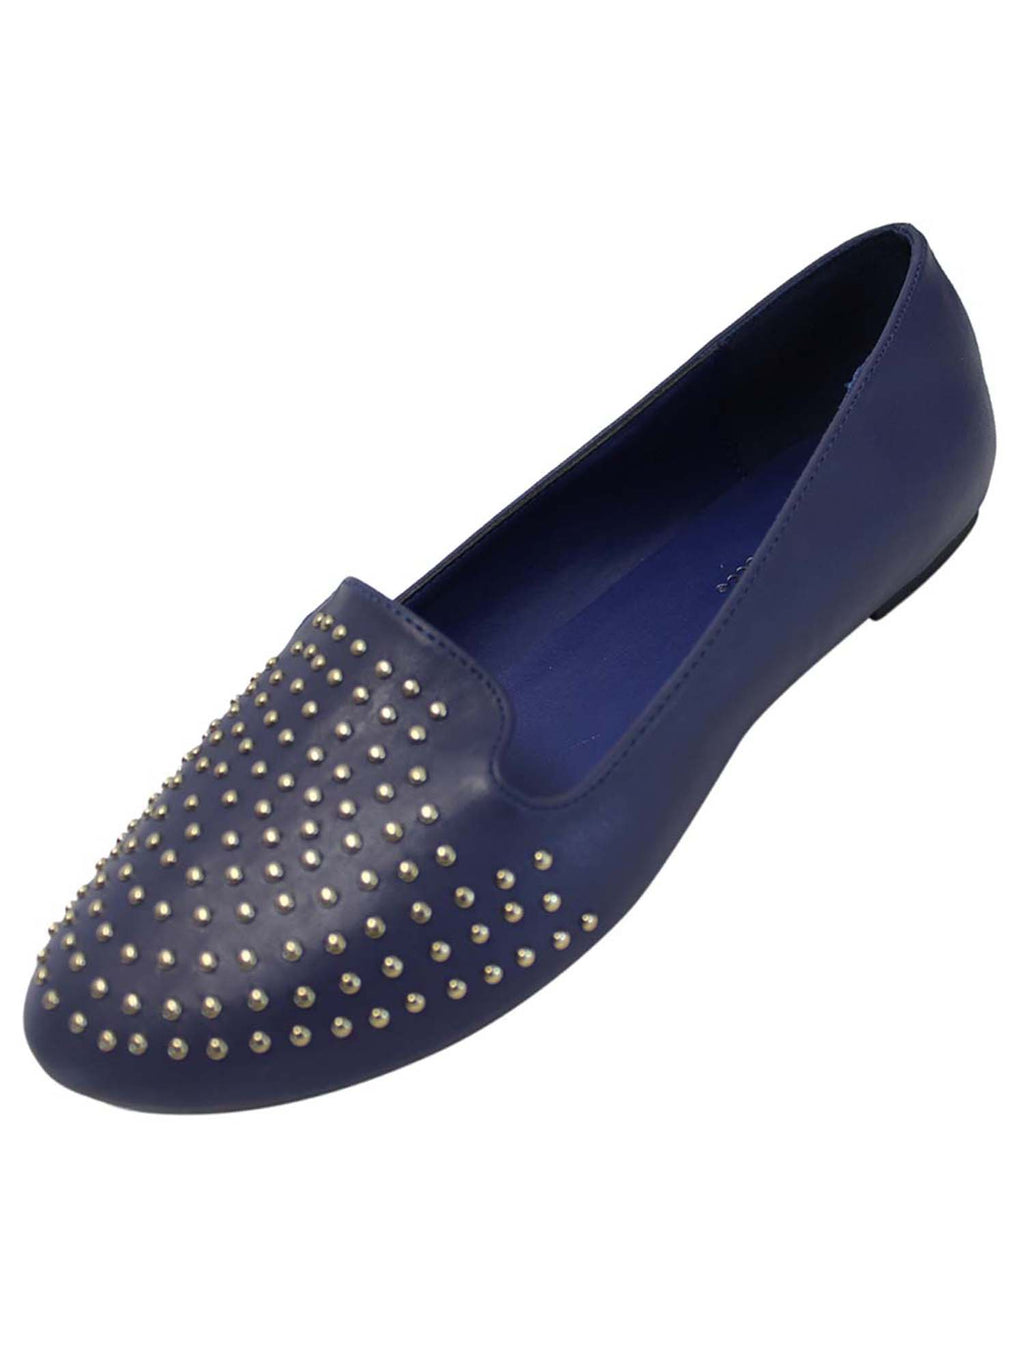 Womens Ballet Flats With Studded Toe